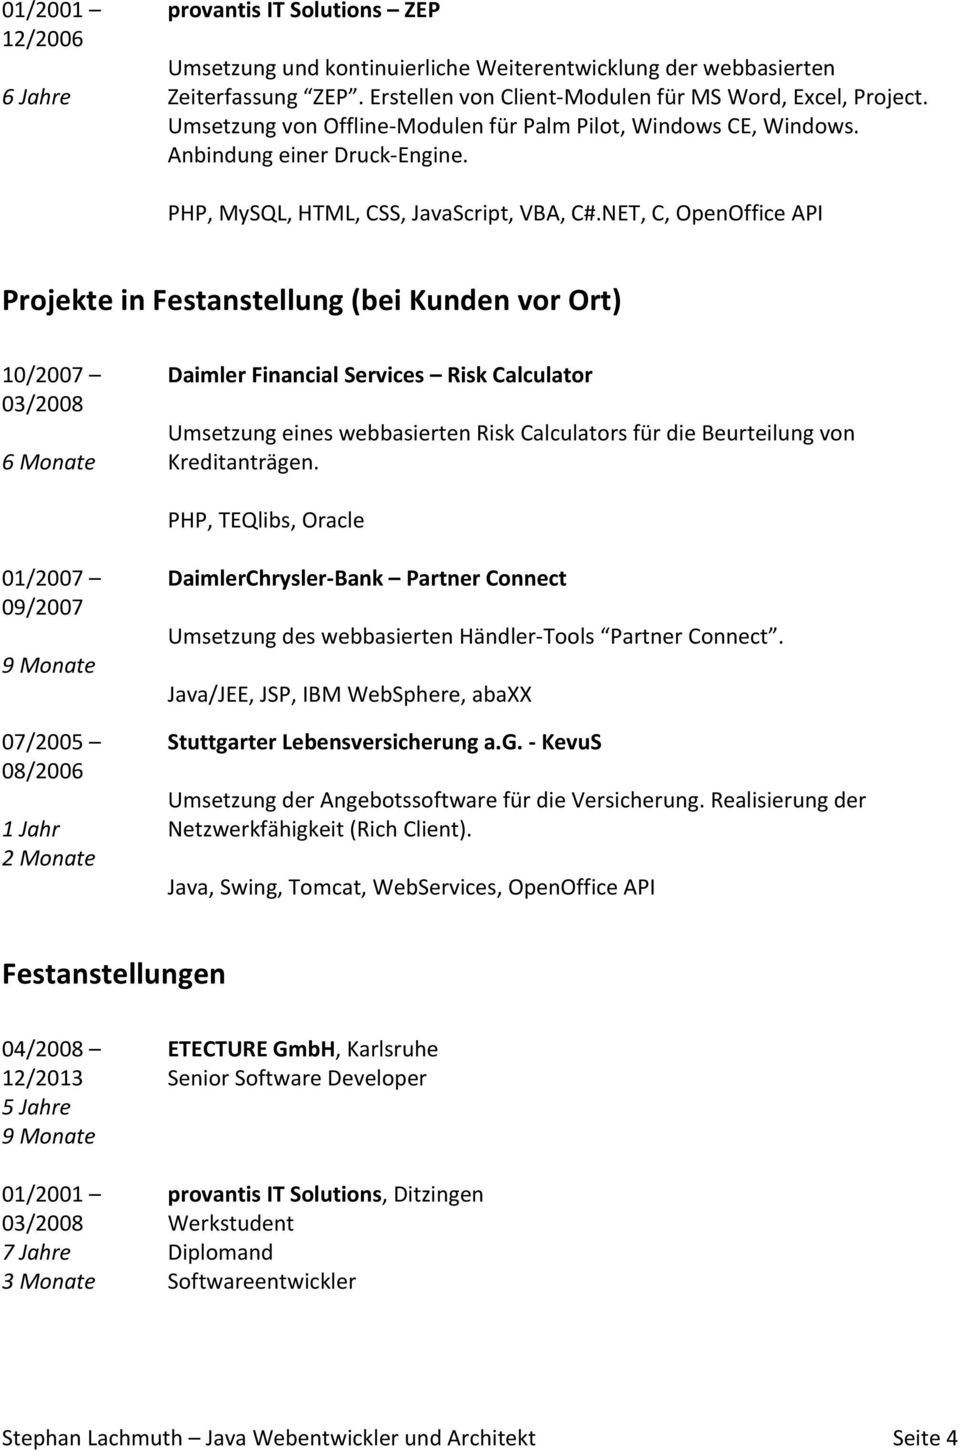 NET,C,OpenOfficeAPI Projekte$in$Festanstellung$bei$Kunden$vor$Ort)$ 10/2007 03/2008 6Monate$ Daimler$Financial$Services$ $Risk$Calculator$